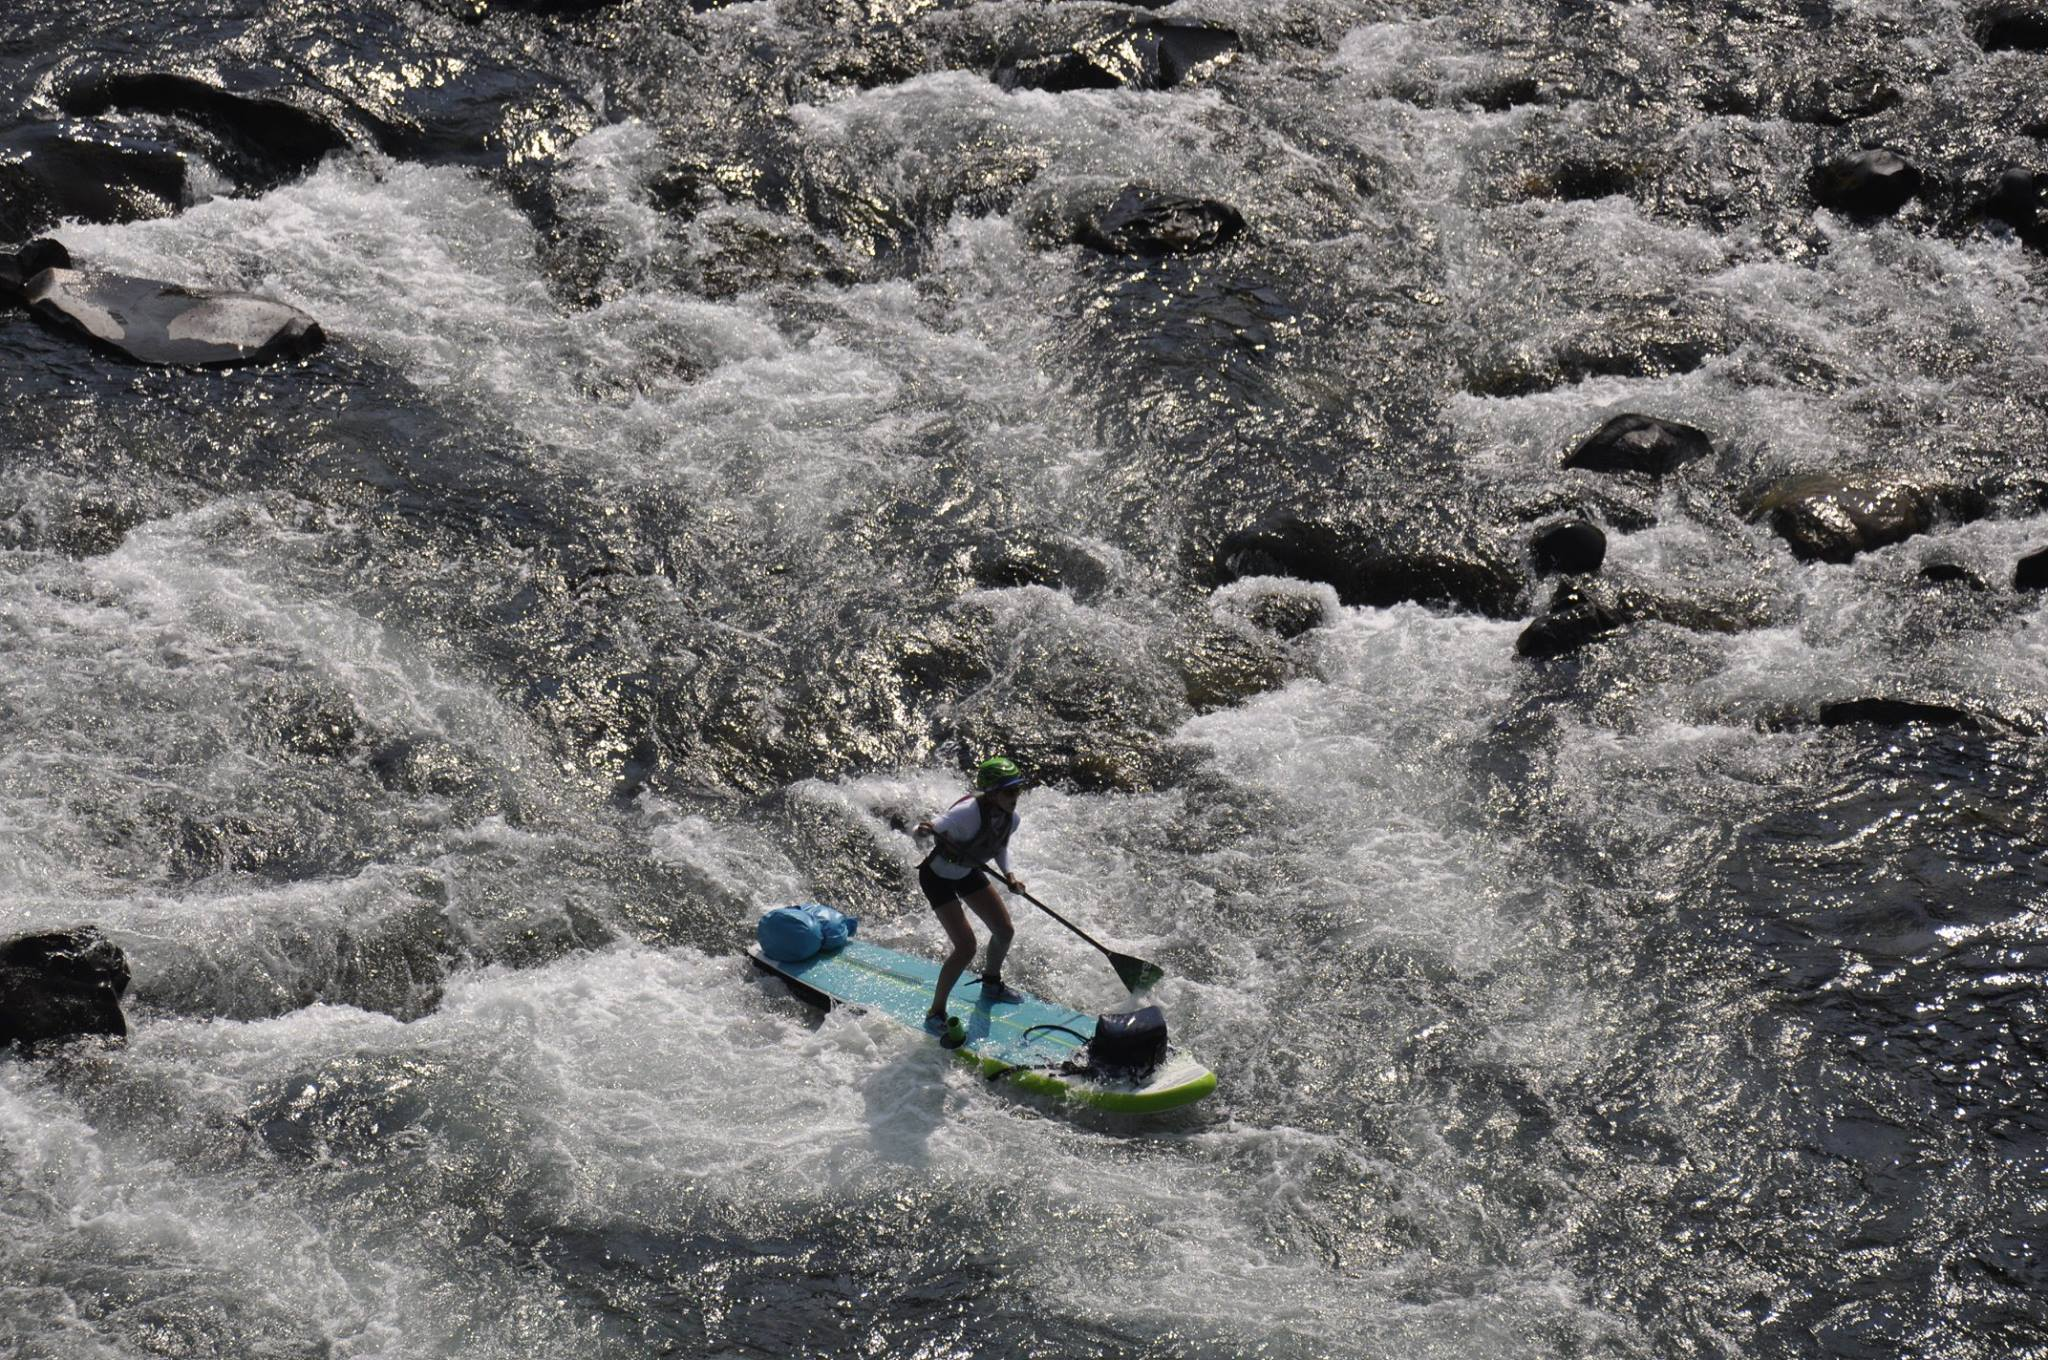 Allie paddles through the Bowl and Pitcher rapids at Riverside State Park in Spokane. (Photo from Allie Roskelley.)